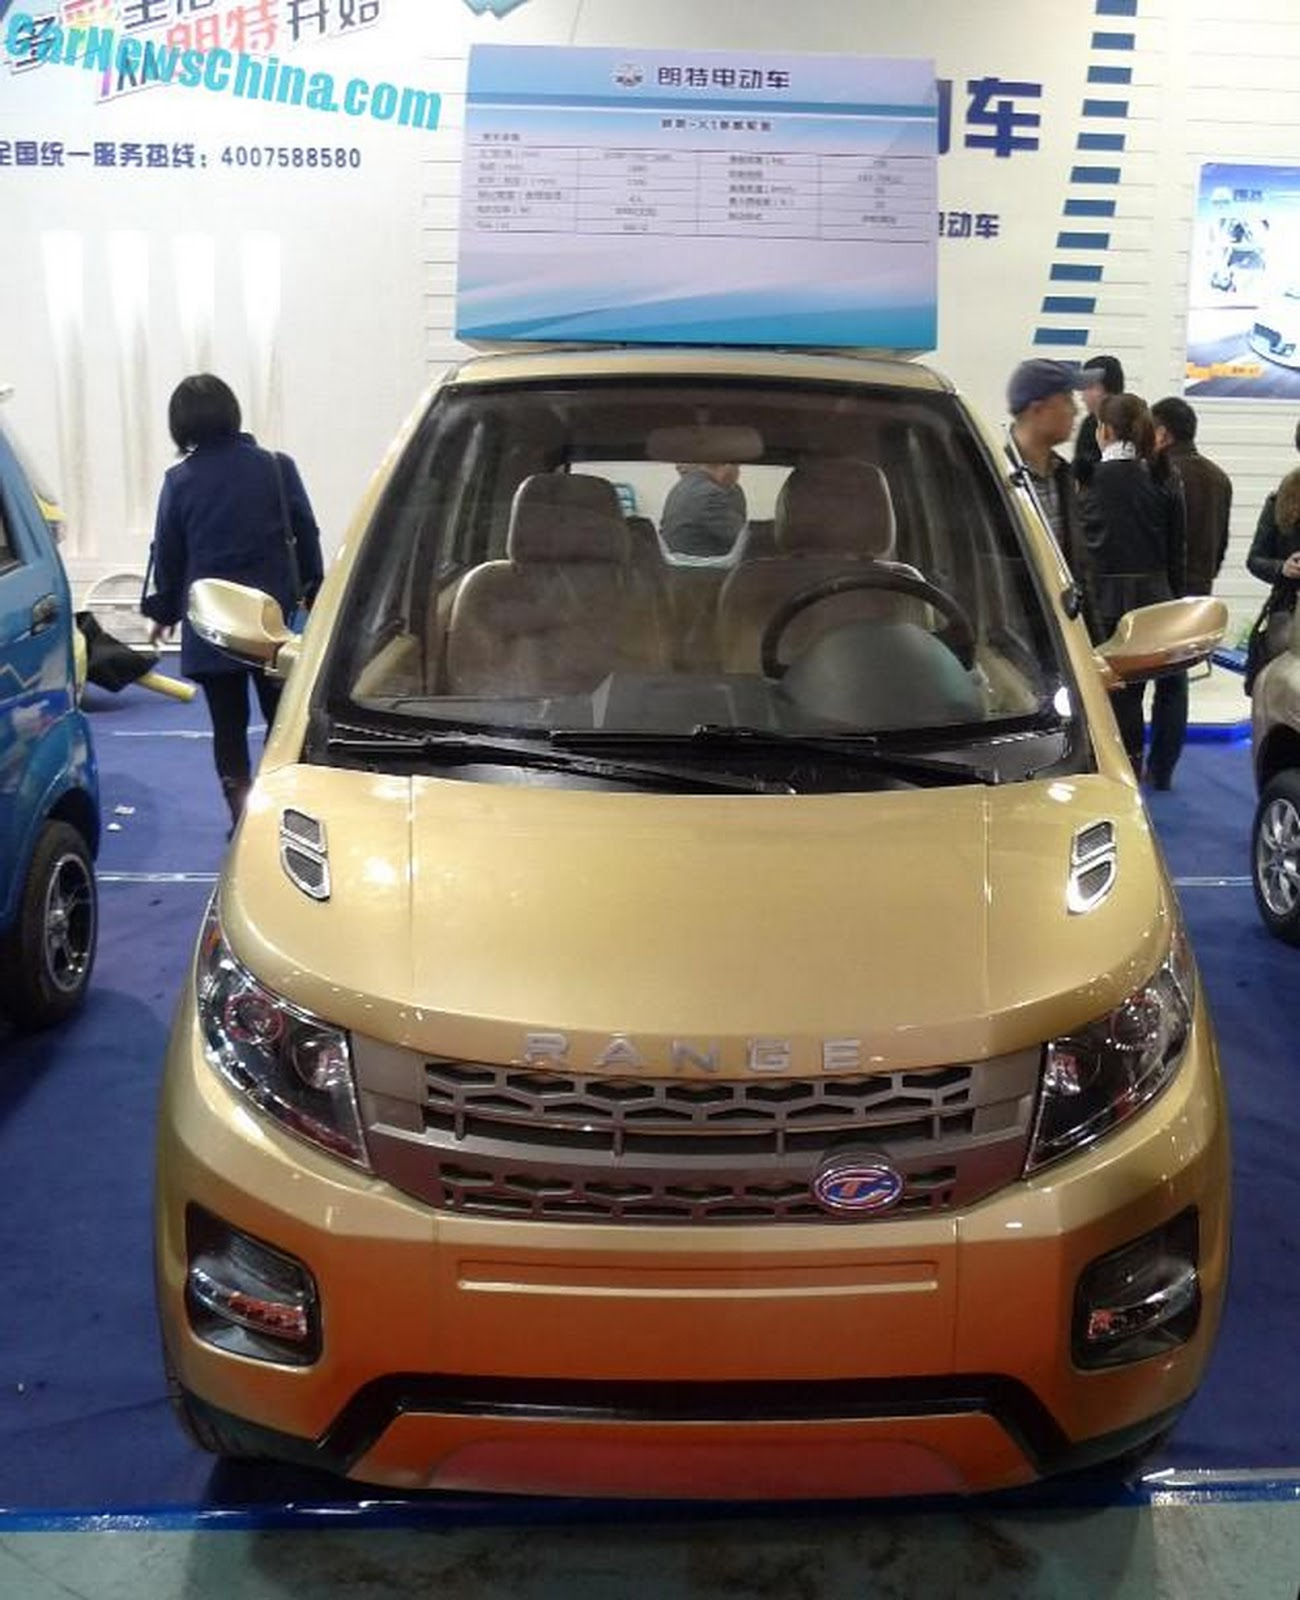 Range-Rover-China-Clone-7.jpg